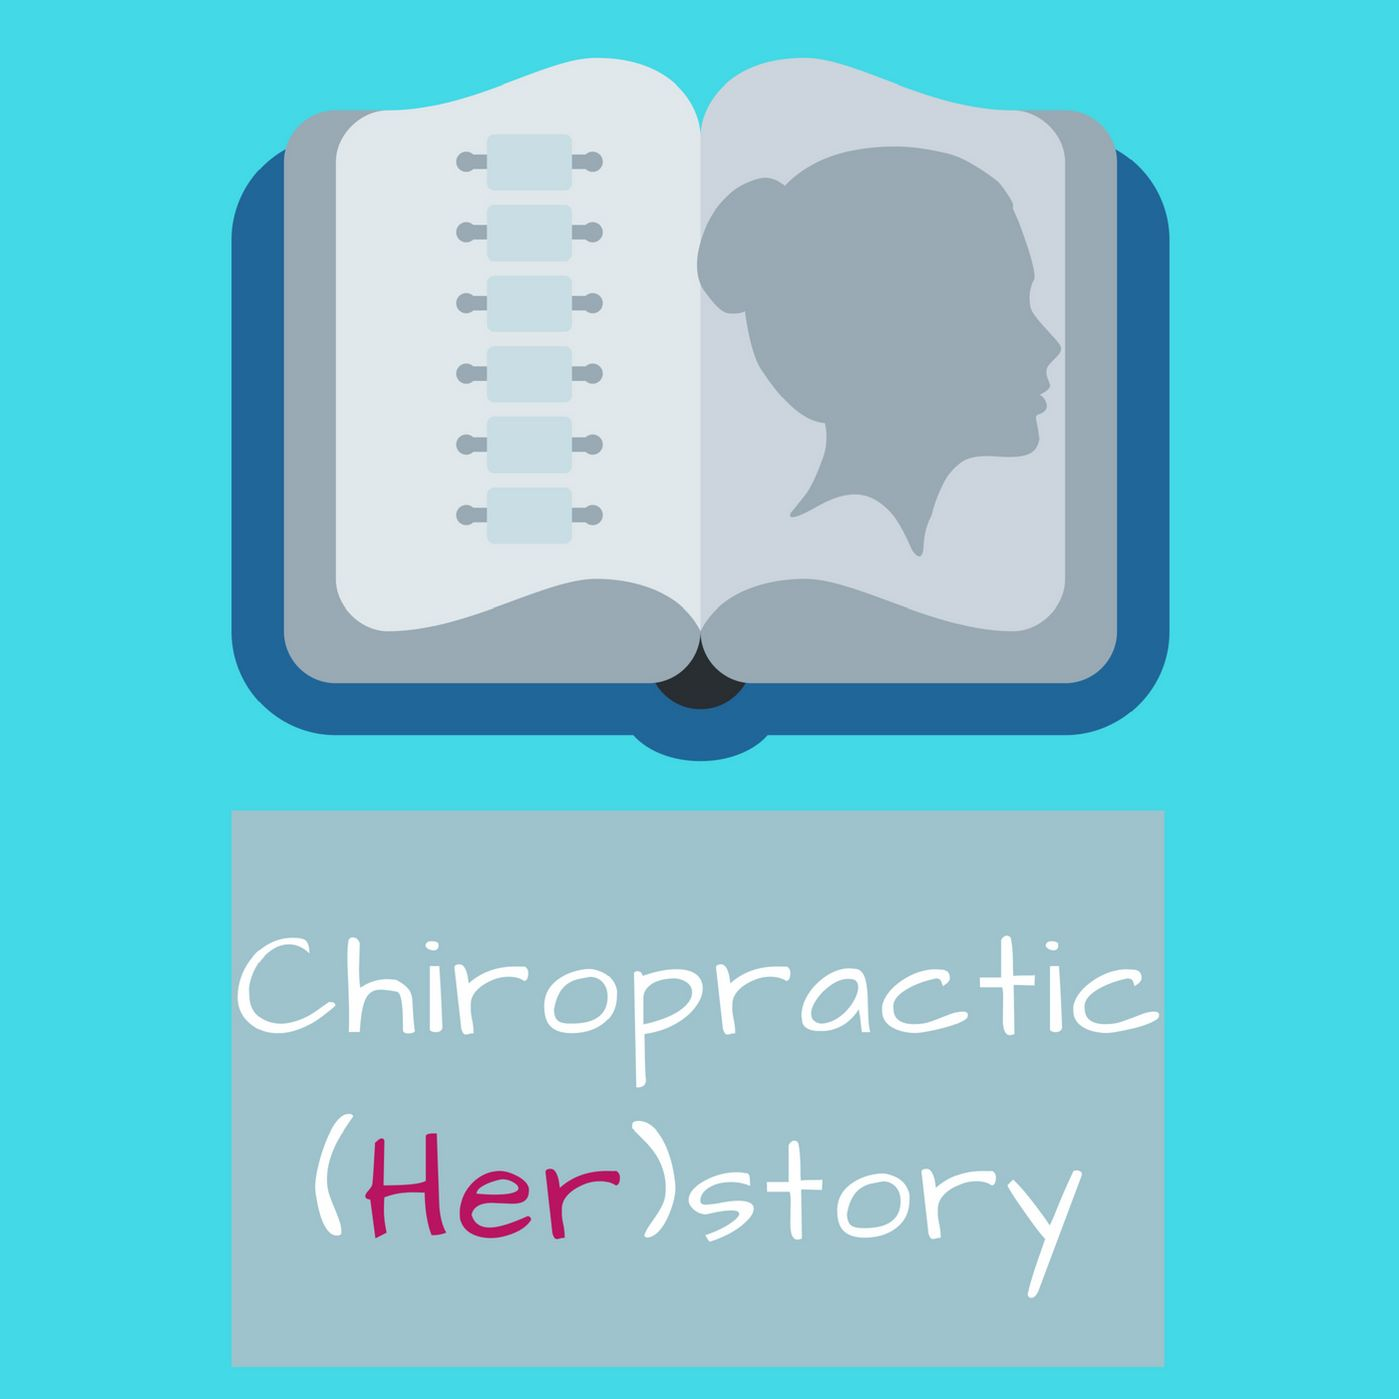 Dr. Prisca Rompen- Chiropractic (Her)story Episode 40